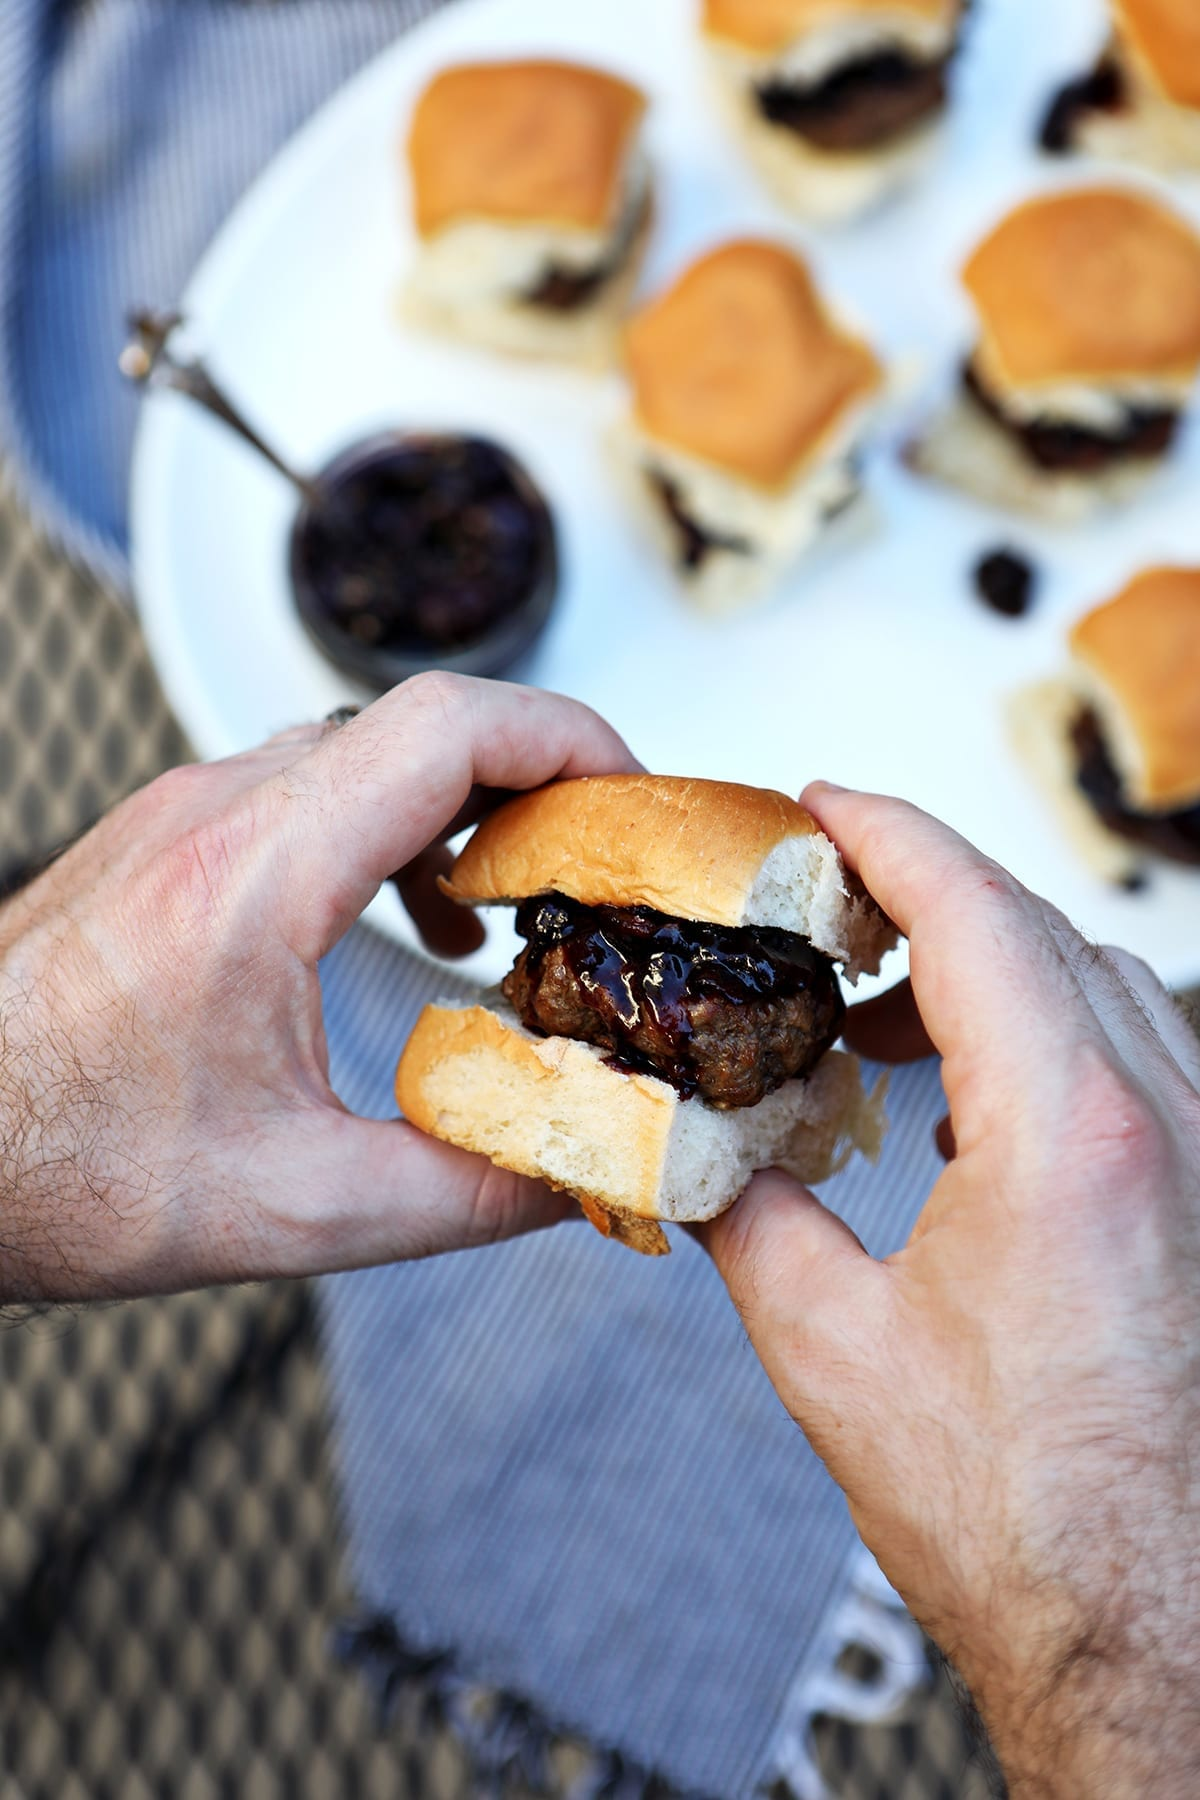 A man holds a slider between his hands with a white platter of other sliders in the background